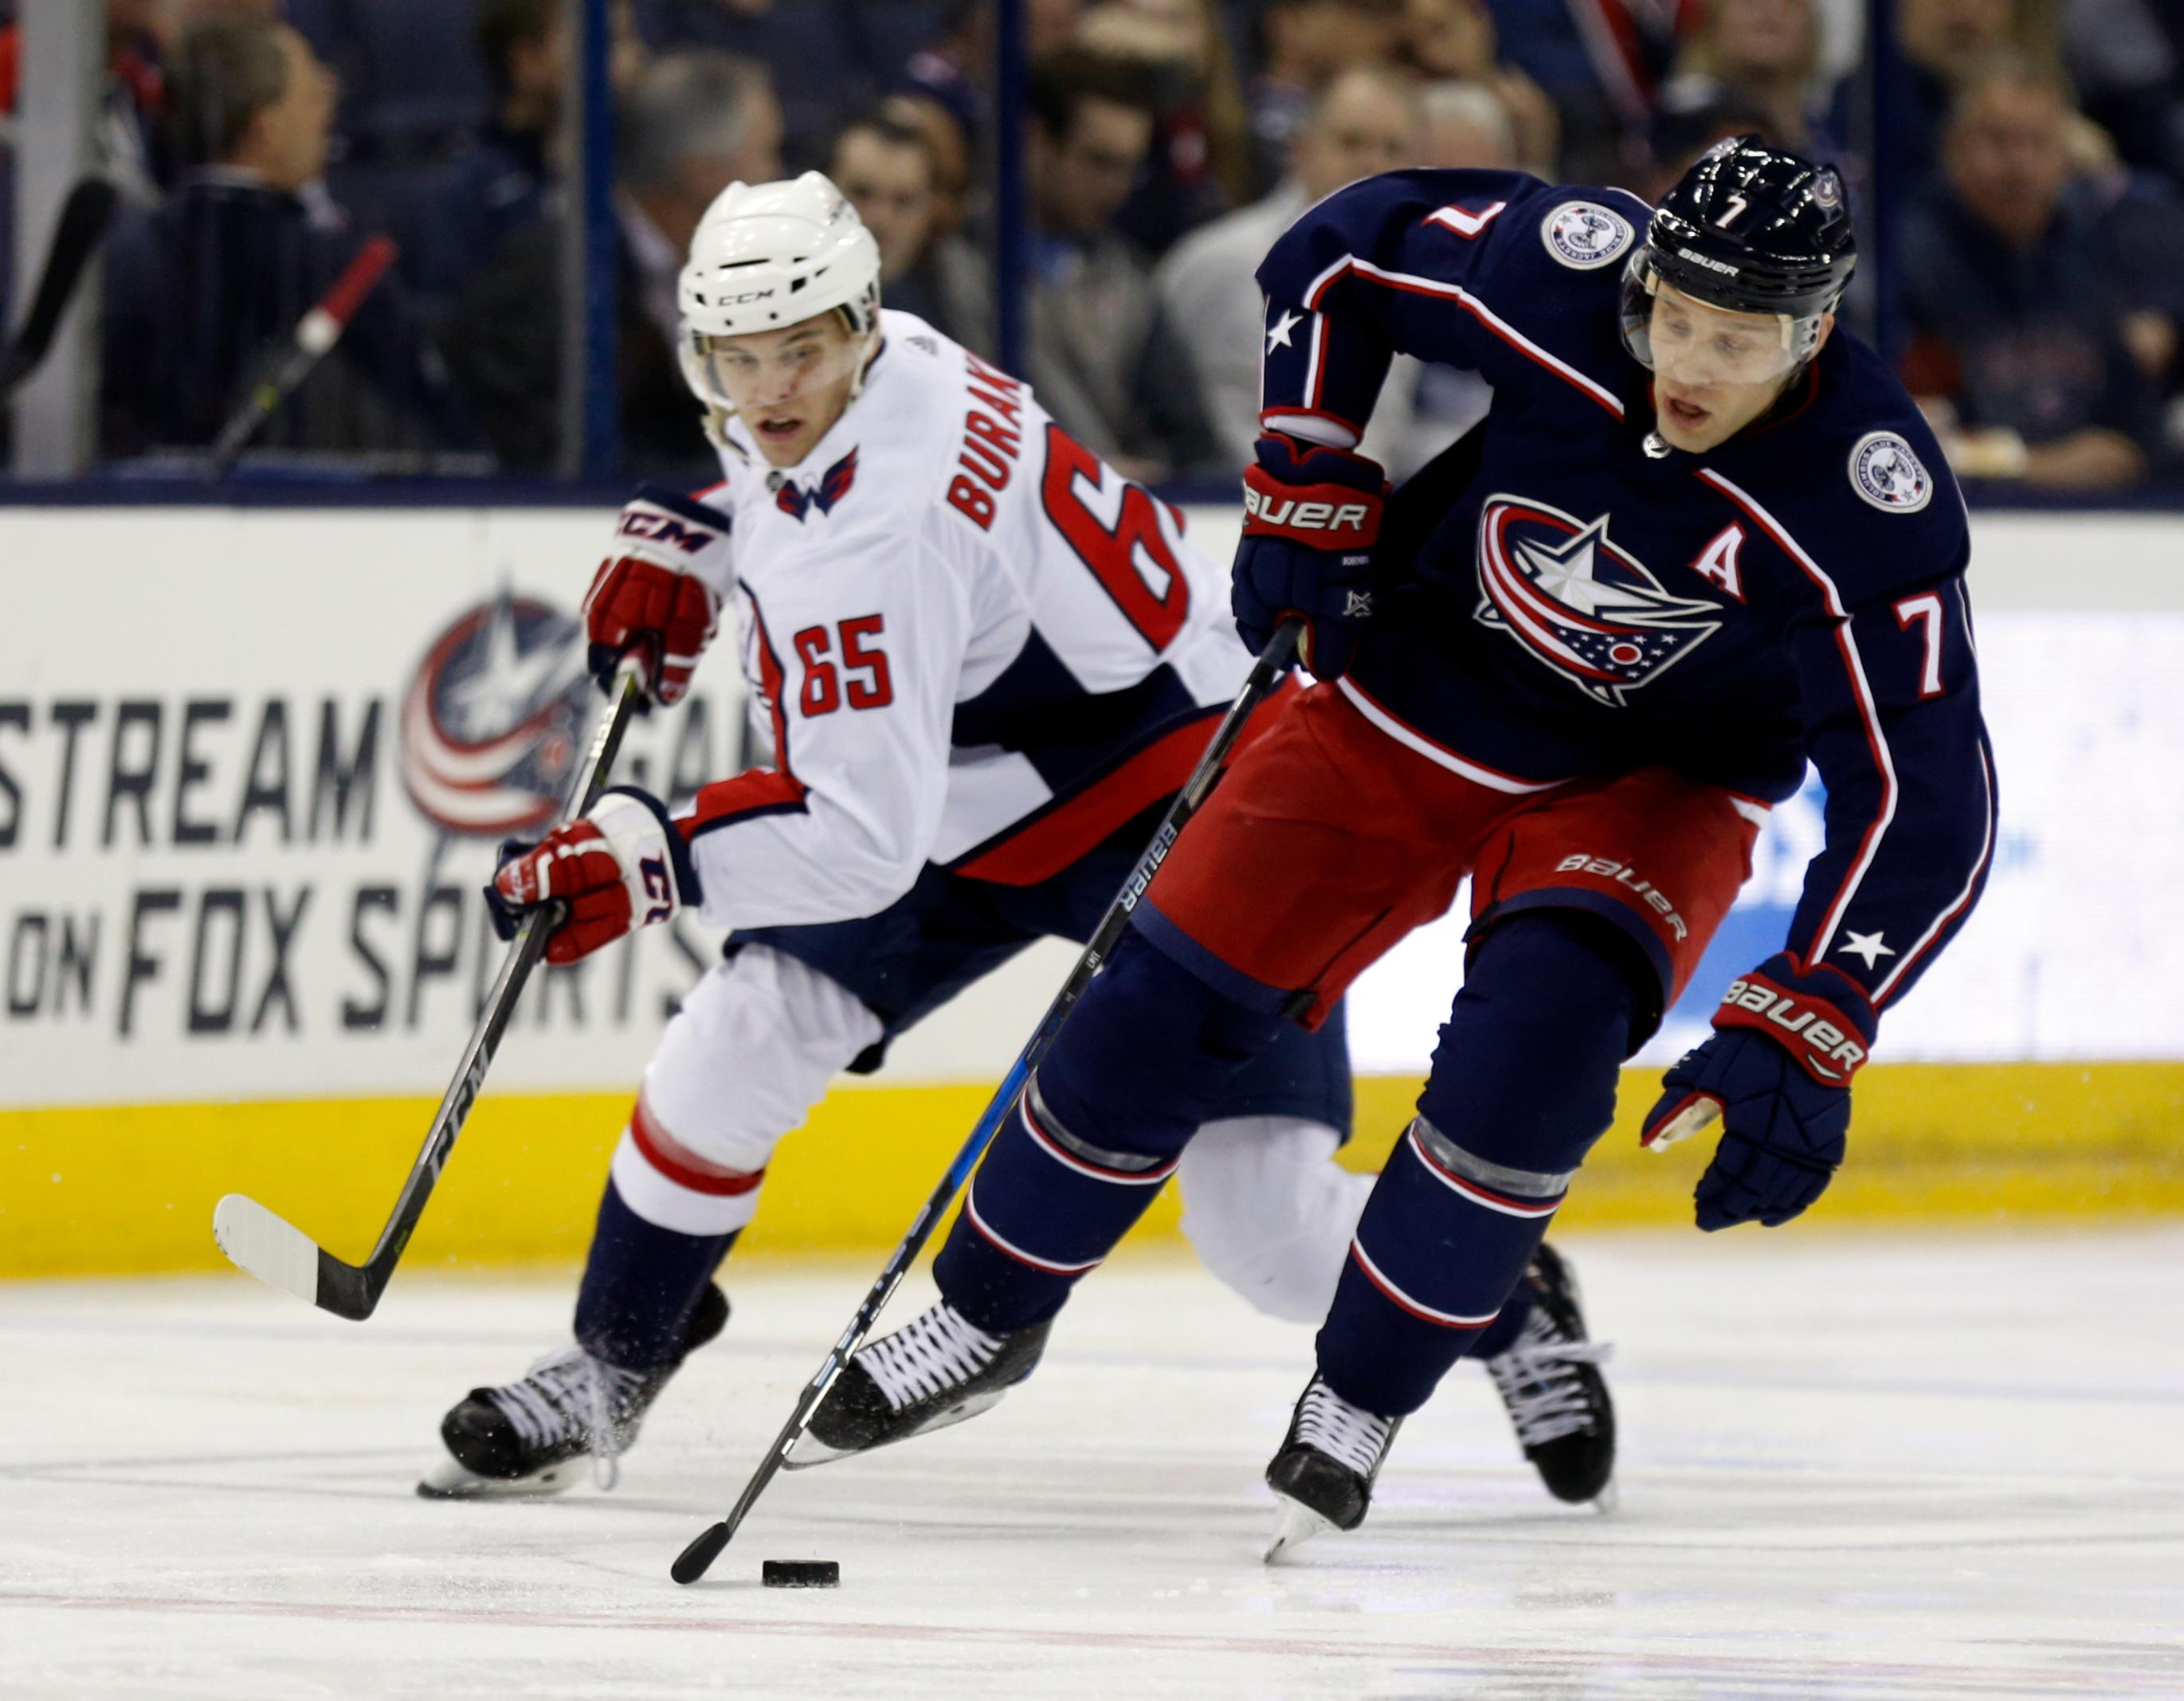 Columbus Blue Jackets defenseman Jack Johnson, right, controls the puck against Washington Capitals forward Andre Burakovsky, of Austria, during the second period of an NHL hockey game in Columbus, Ohio, Monday, Feb. 26, 2018. (AP Photo/Paul Vernon)